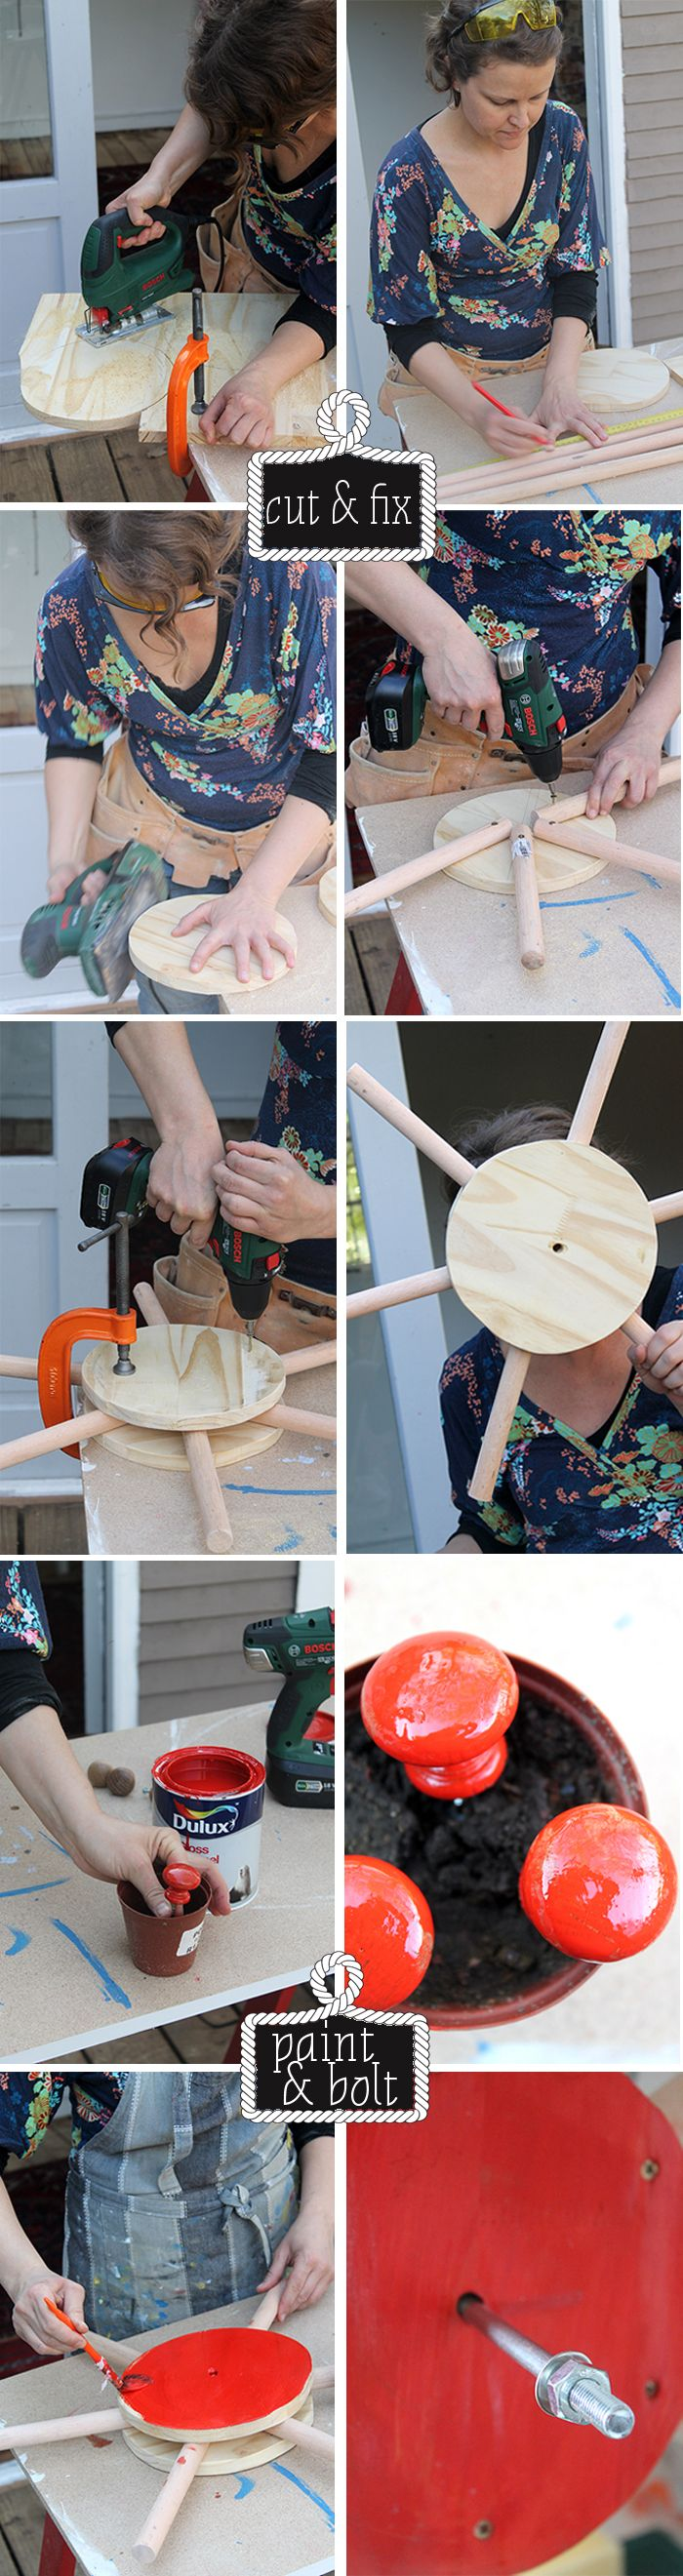 How to make a ship's wheel. Just in case you were wondering! www.homeology.co.za